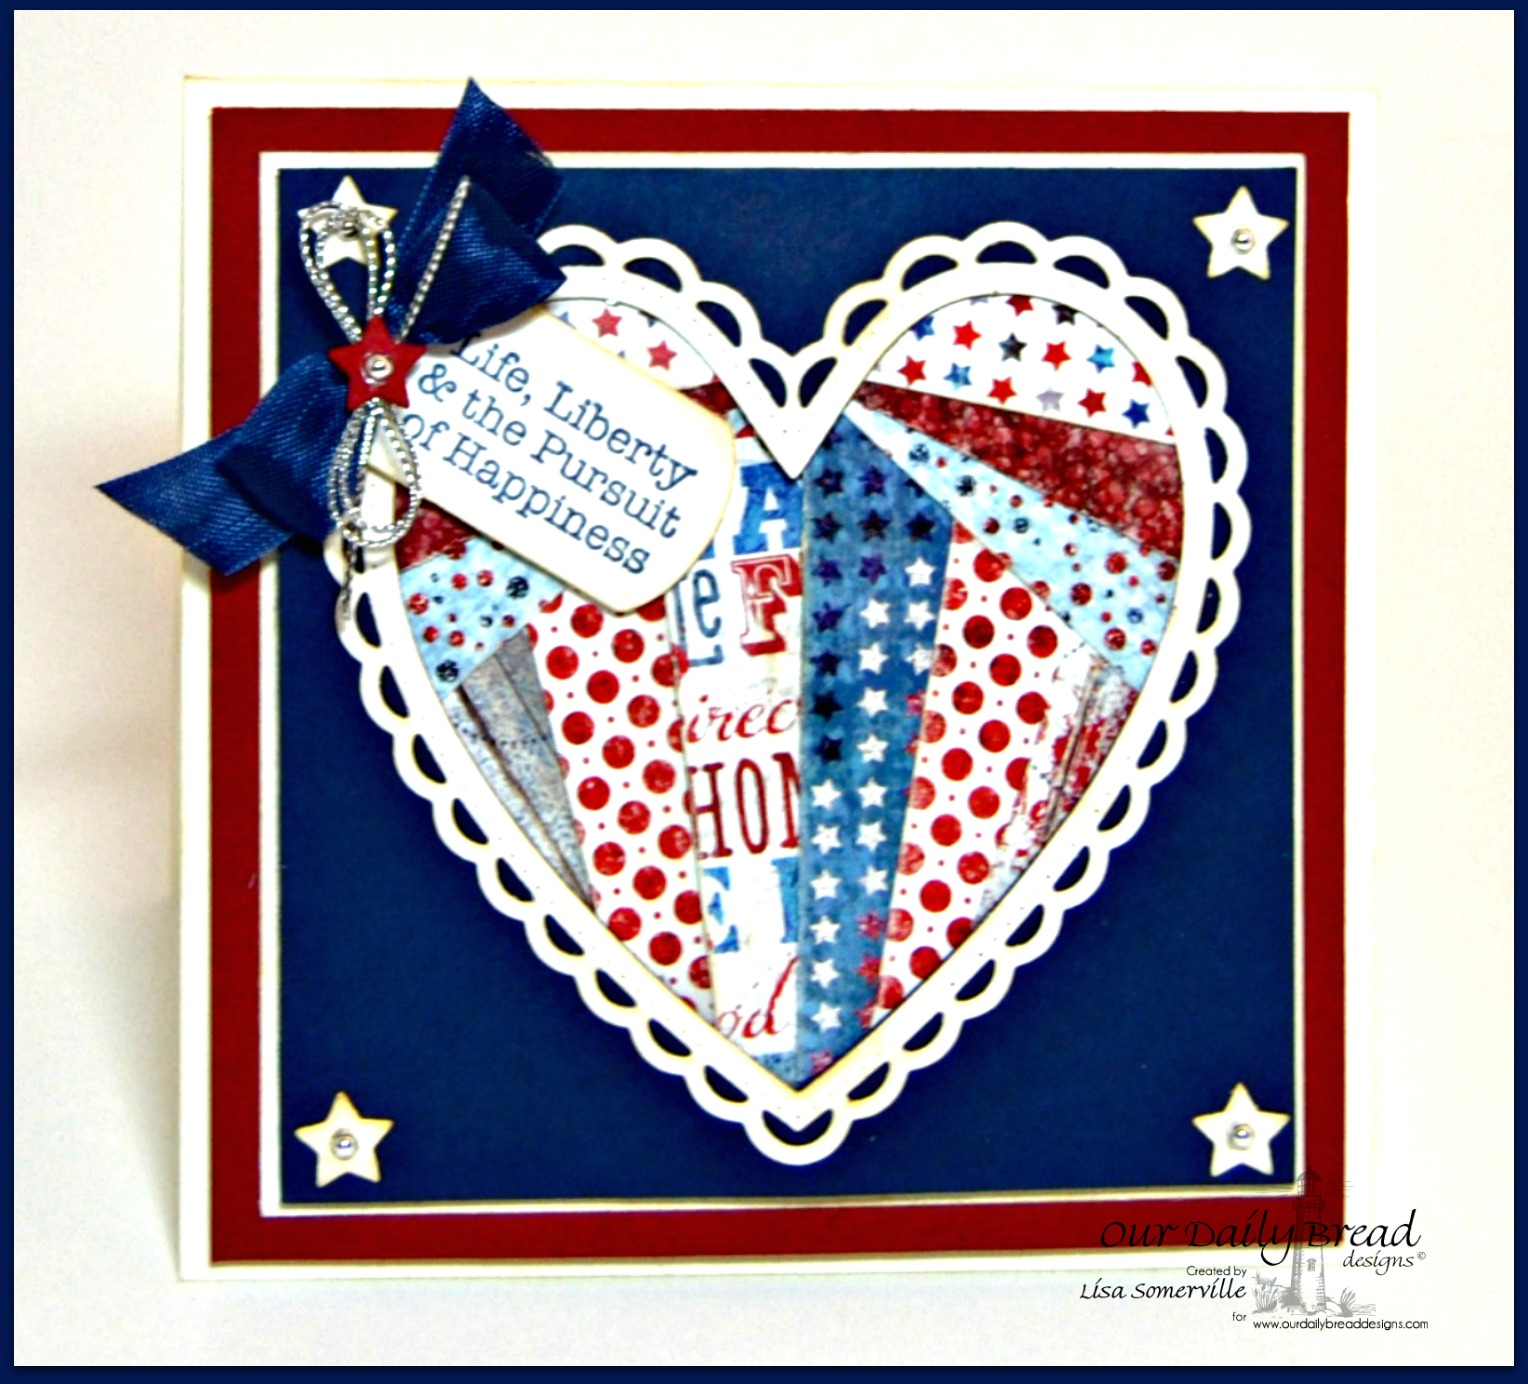 Stamps - Our Daily Bread Designs American Hero, ODBD Custom Mini Tags Dies, ODBD Custom Sparkling Stars Dies, ODBD Custom Ornate Hearts Dies, ODBD Patriotic Paper Collection